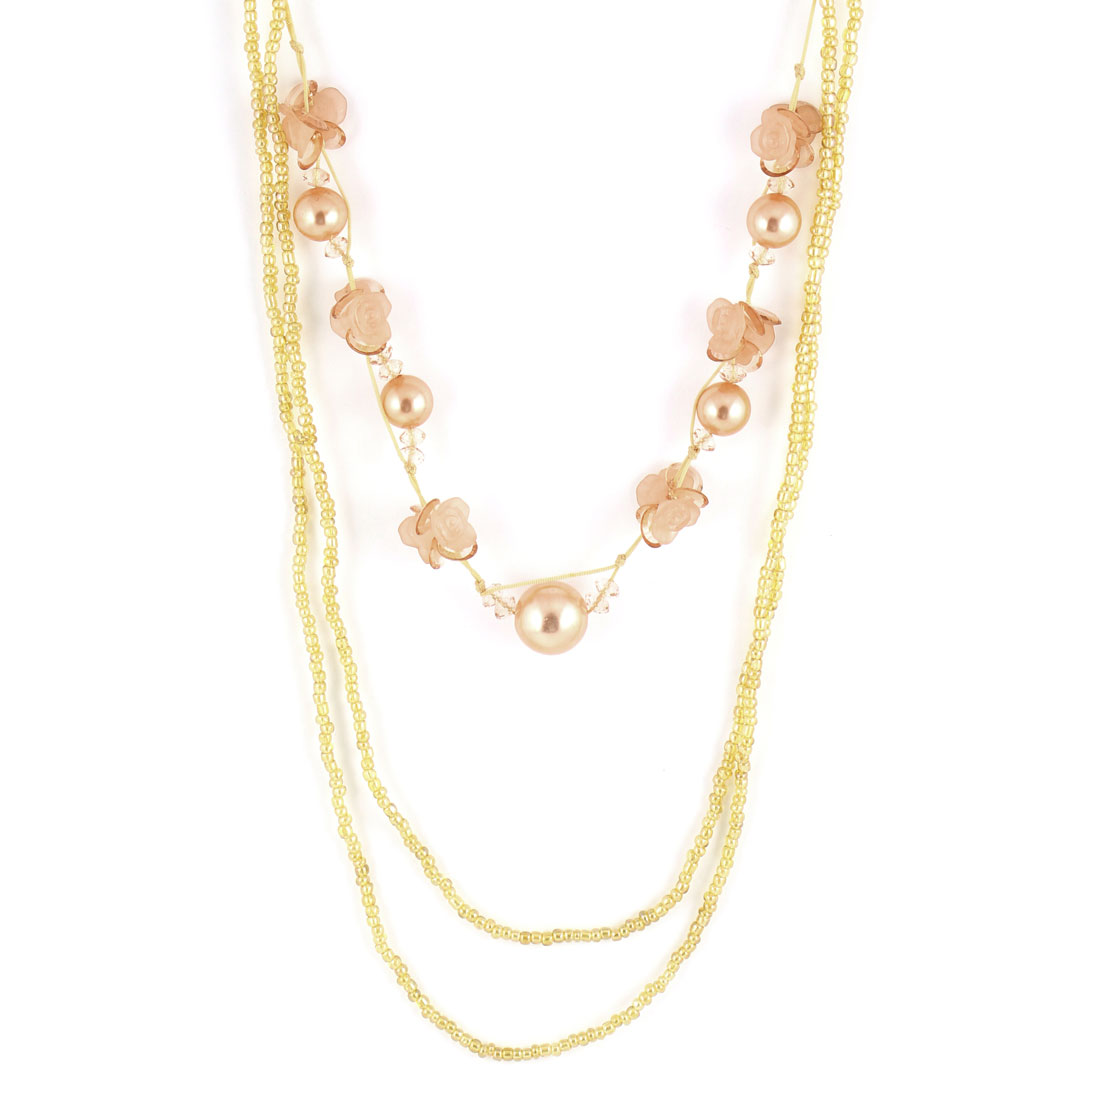 Women 3 Layer Beads Detail Sweater Chain Necklace Pale Apricot Yellow